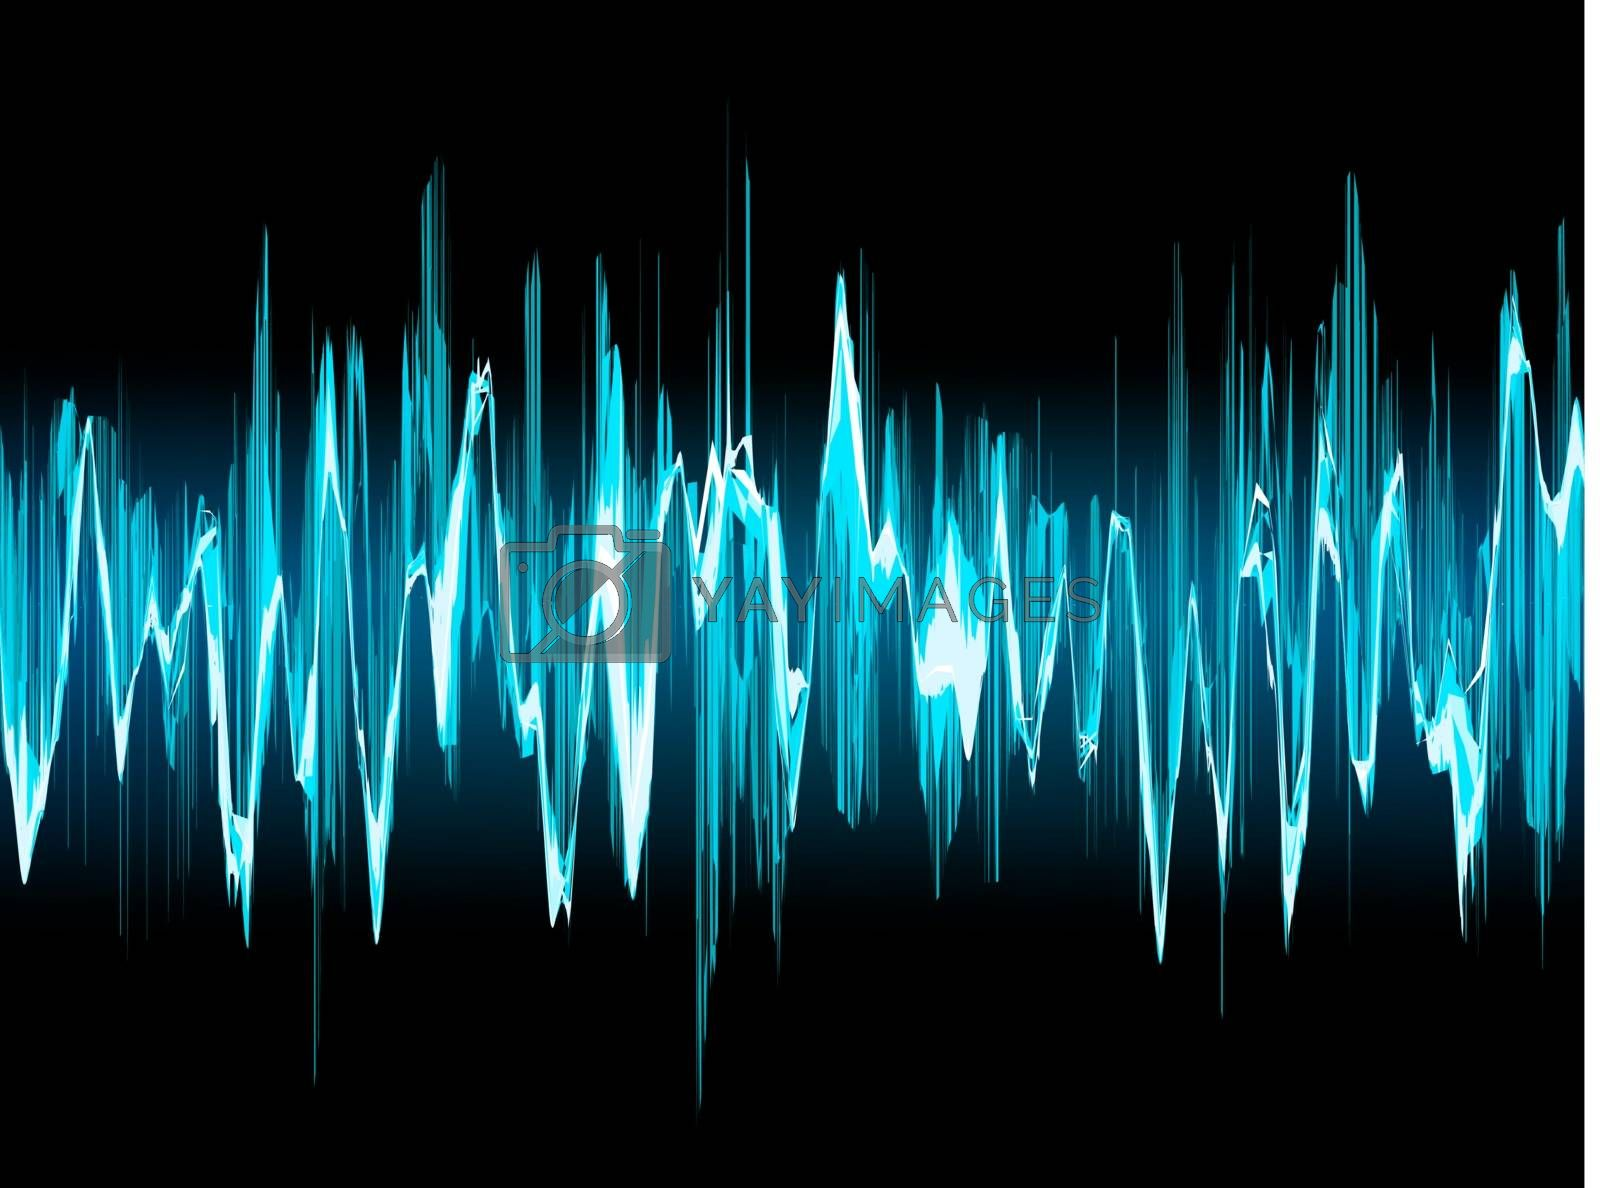 Bright sound wave on a dark blue background. EPS 10 vector file included